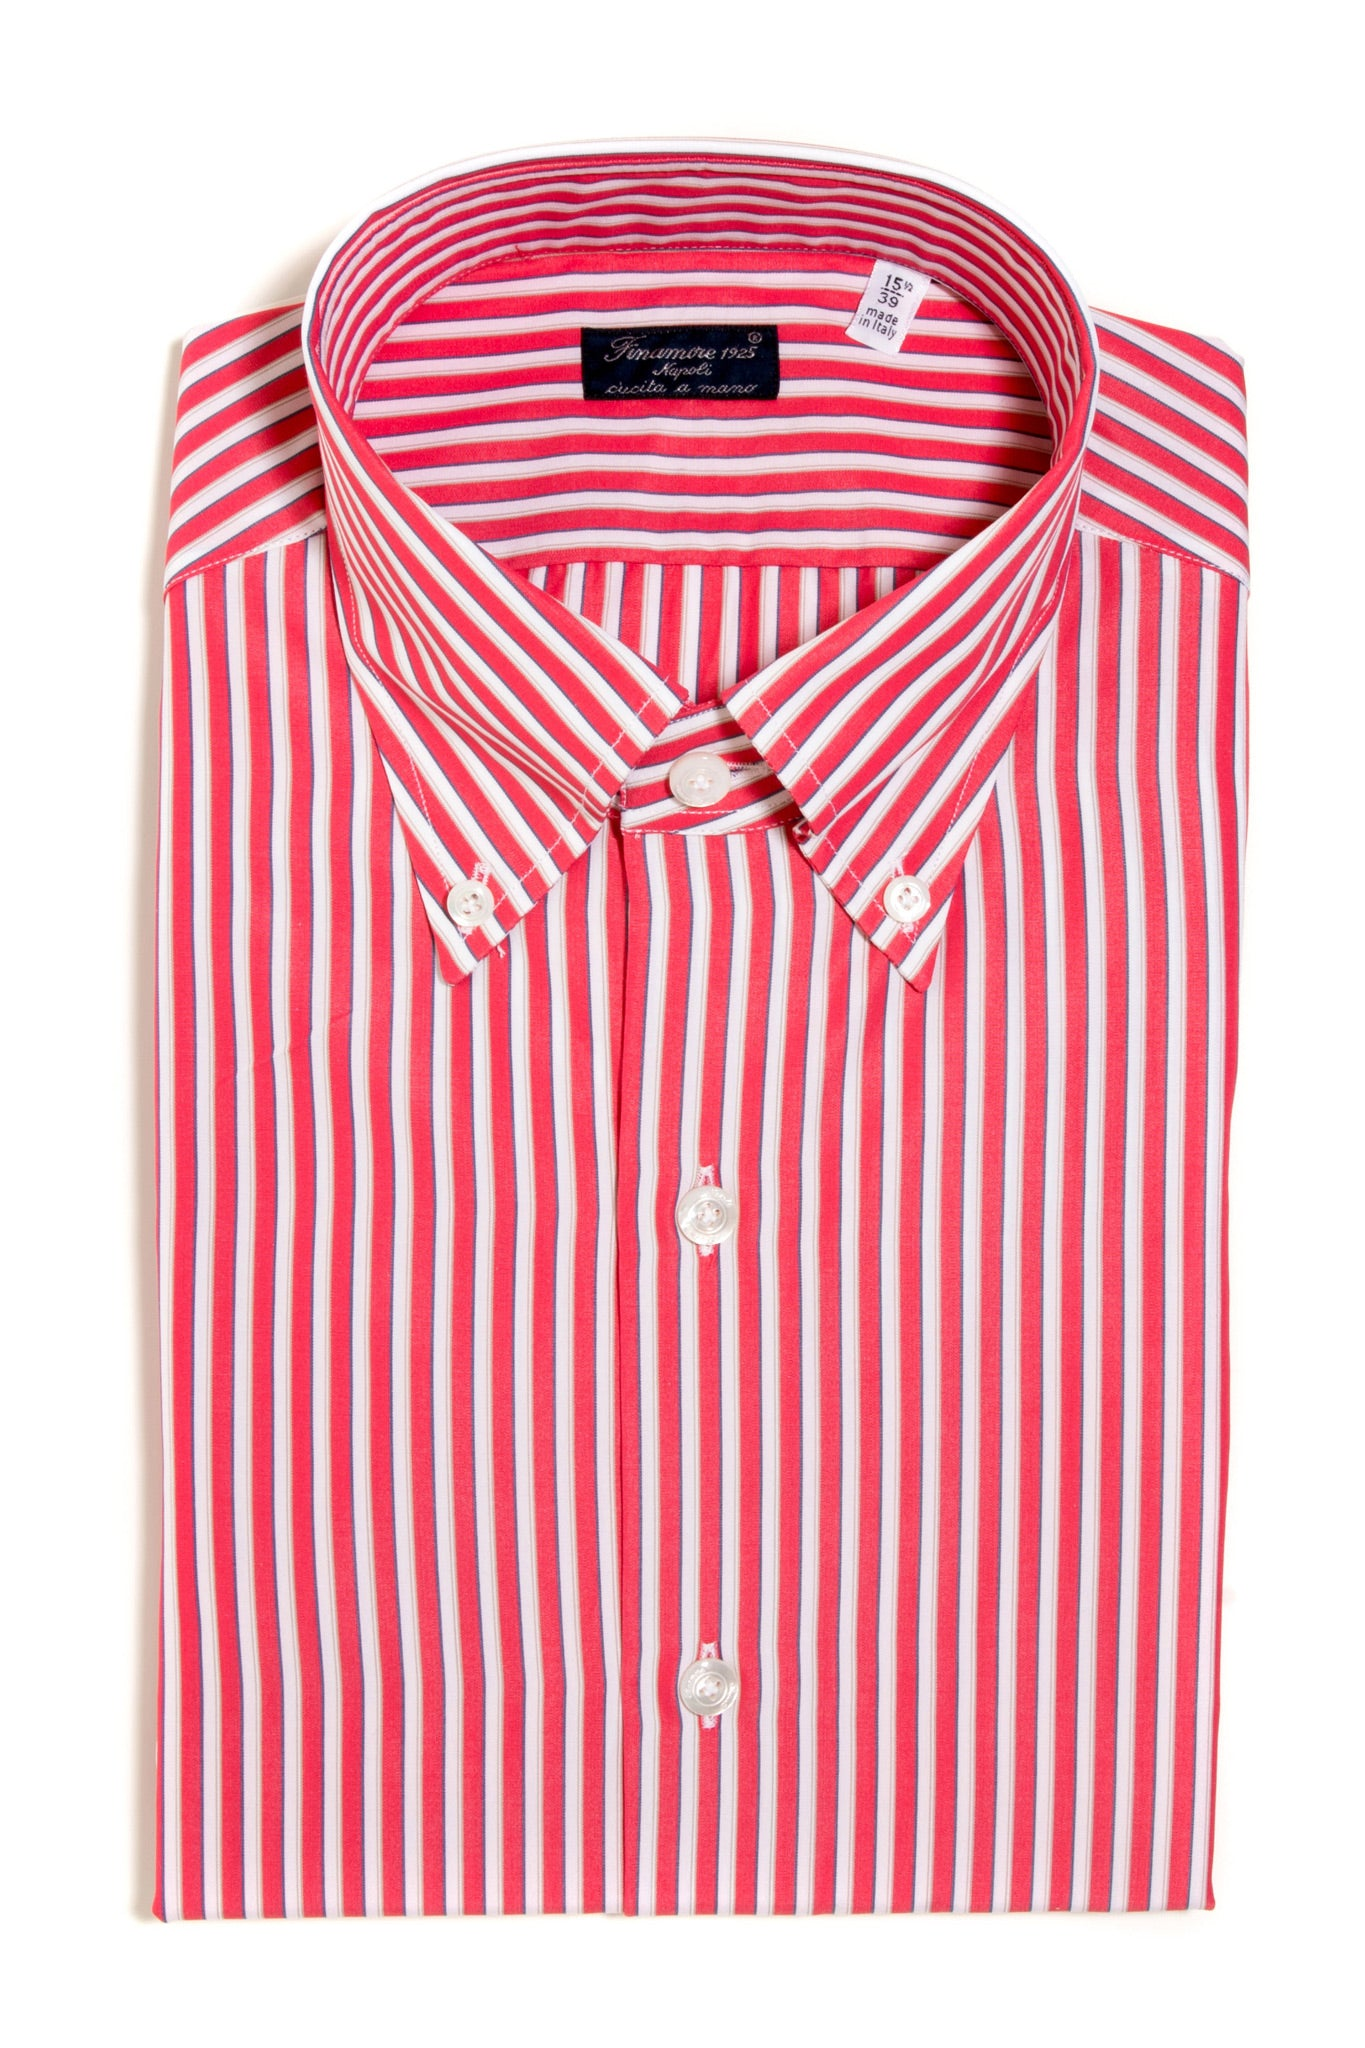 Finamore Giordano Poplin Dress Shirt (147438305304)